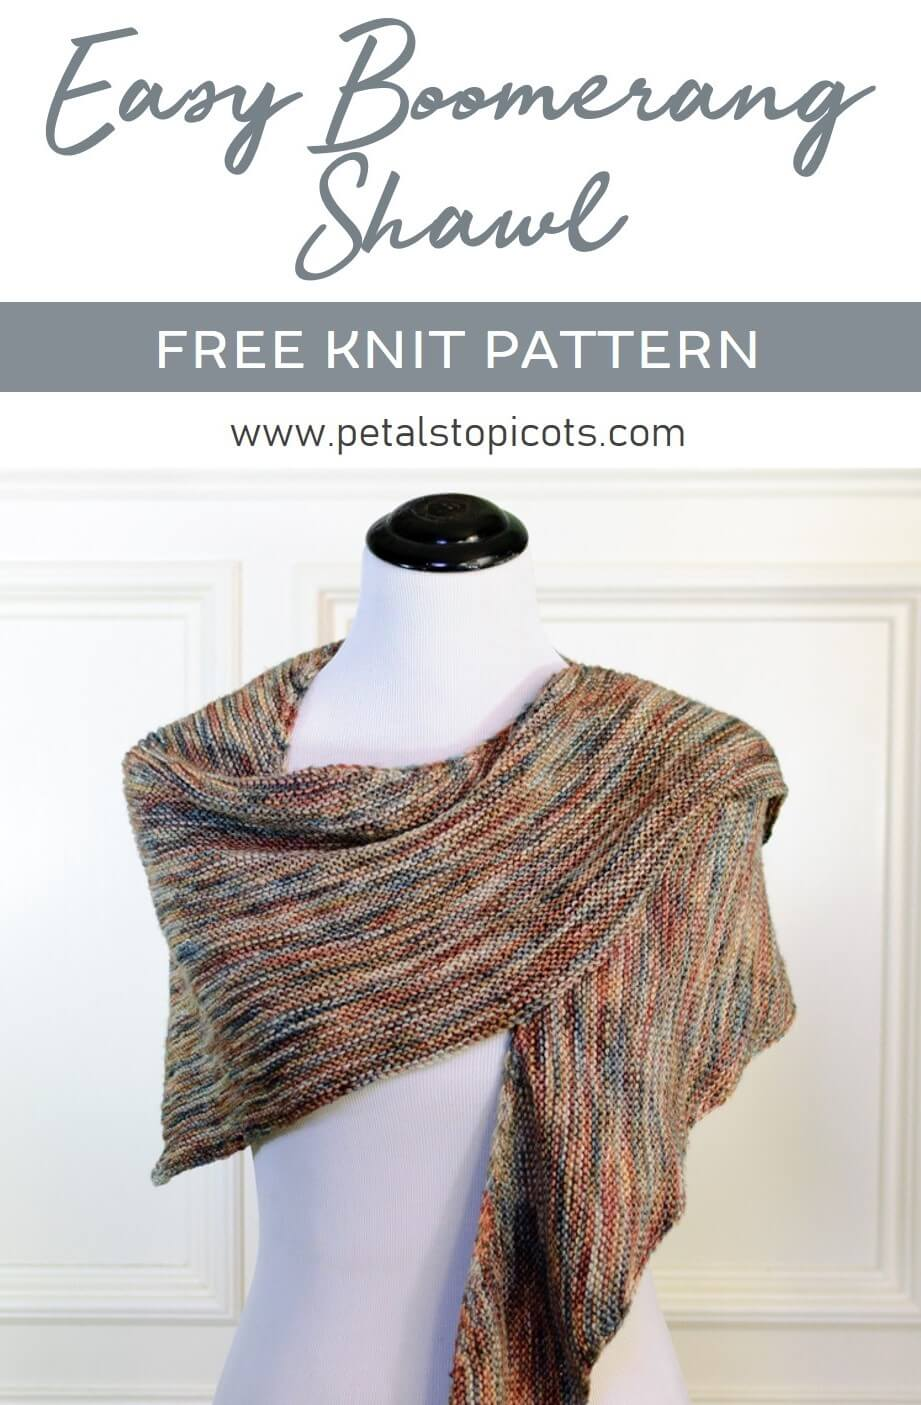 This boomerang shawl is a simple yet enjoyable knit and is perfect for showing off that extra special yarn you've been saving in your stash! #petalstopicots